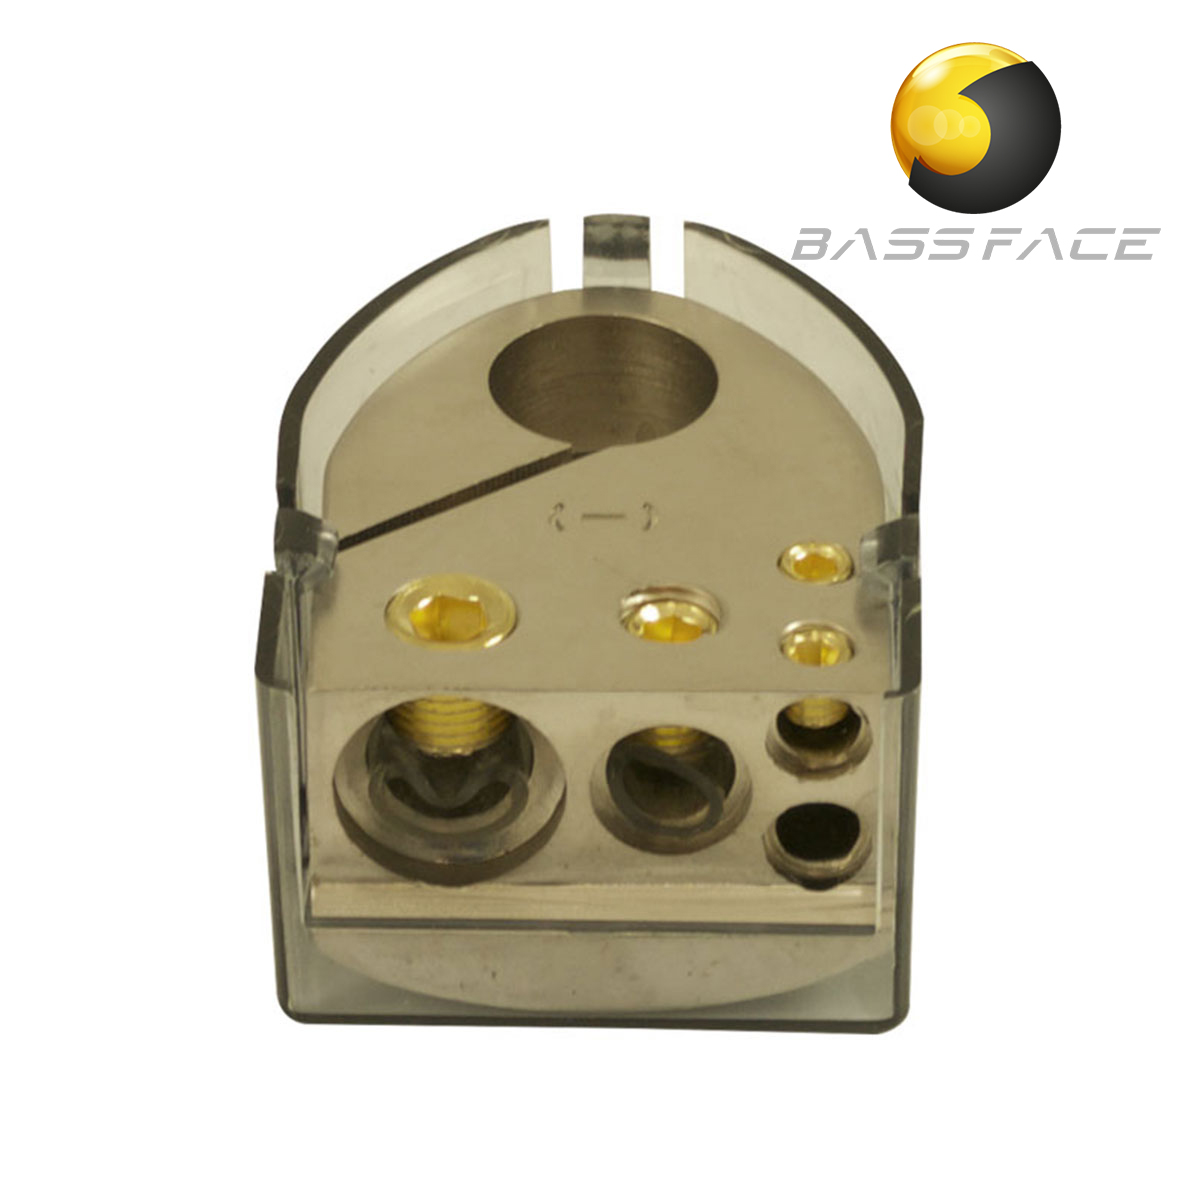 Bassface Car Audio The Specialists In 220 Screw Fuse Box Pbtn1 Battery Negative Terminal 1x0awg 1x4awg 2x8awg Inputs